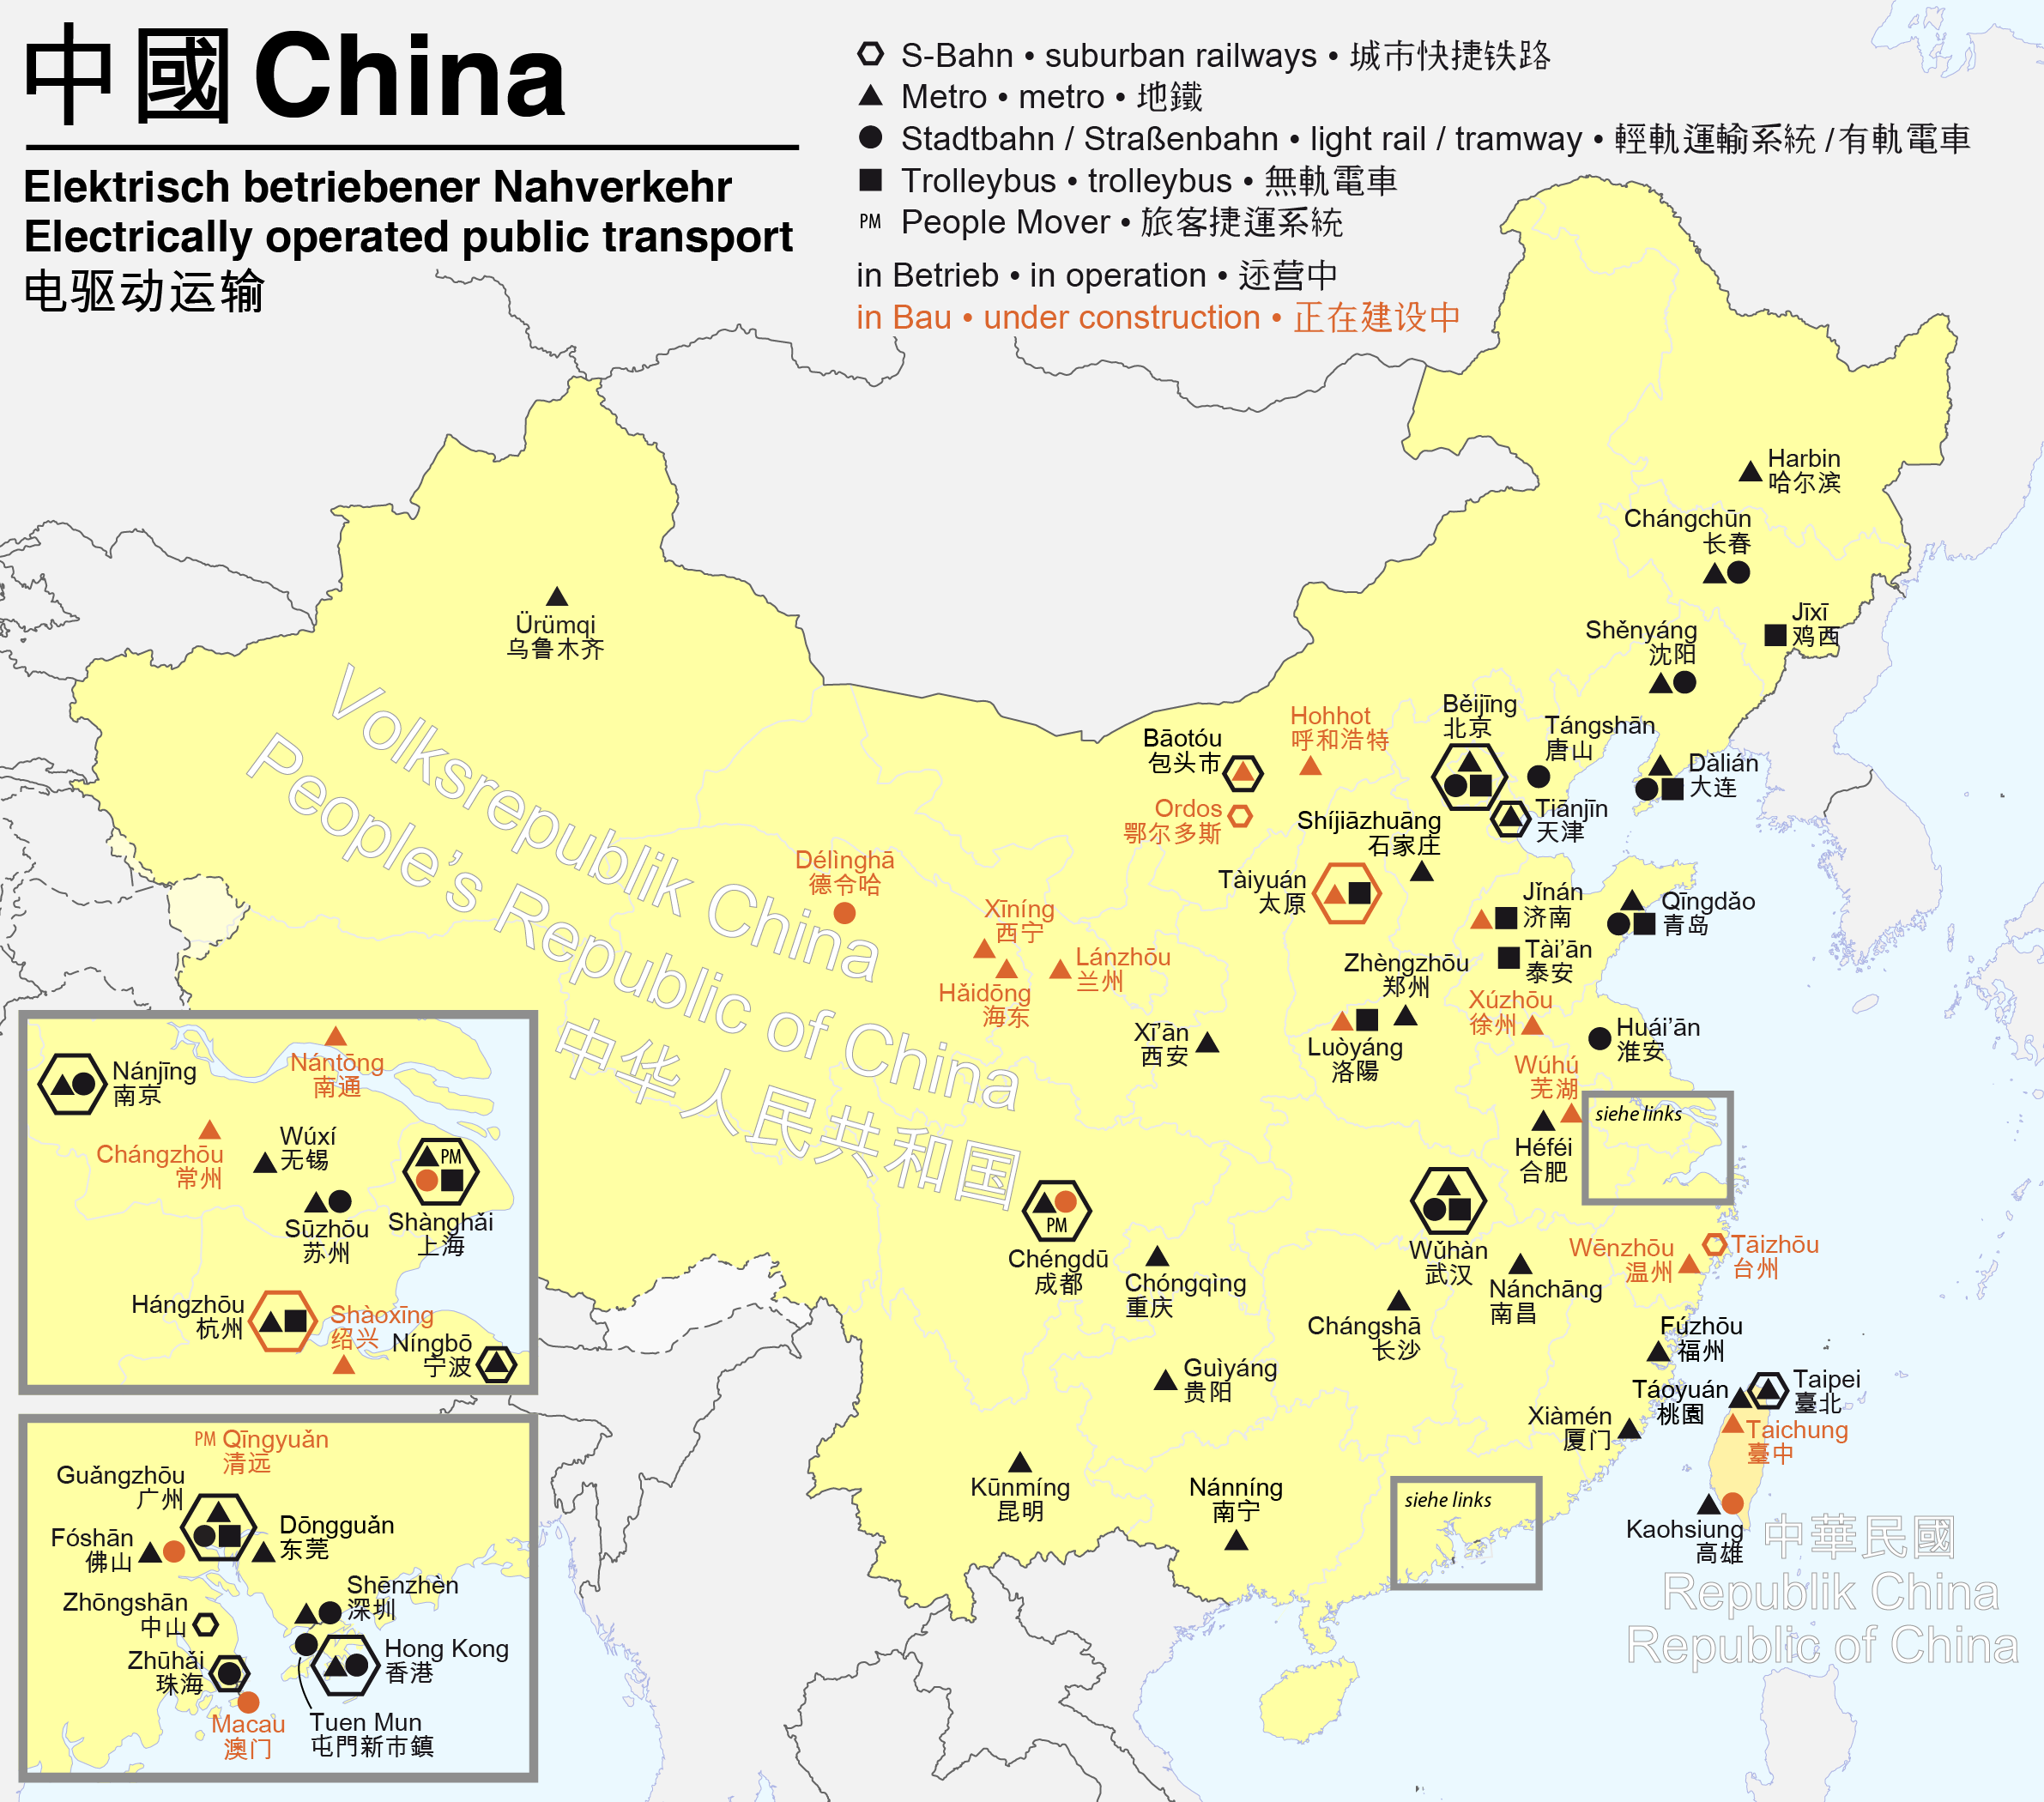 opnv-systeme_in_china.png